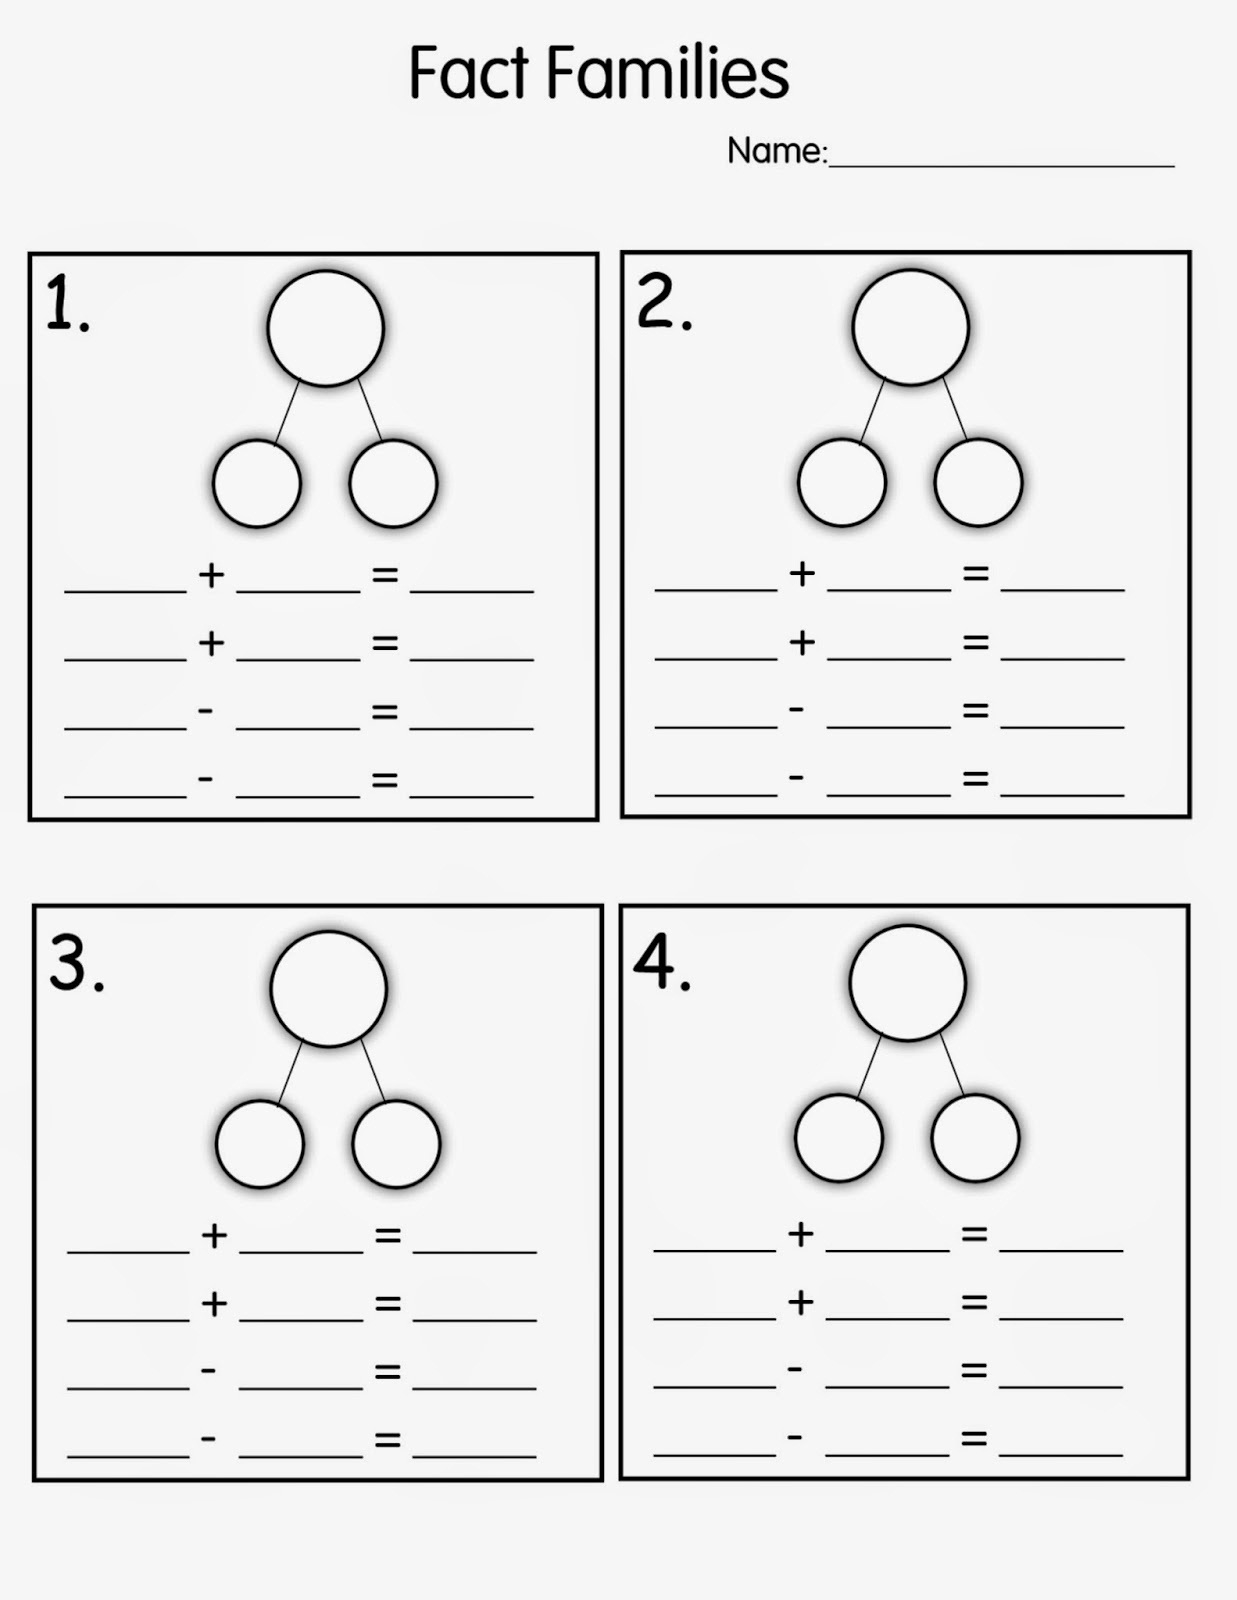 Fact Family Worksheets For First Grade Davezan – Fact Family Math Worksheets